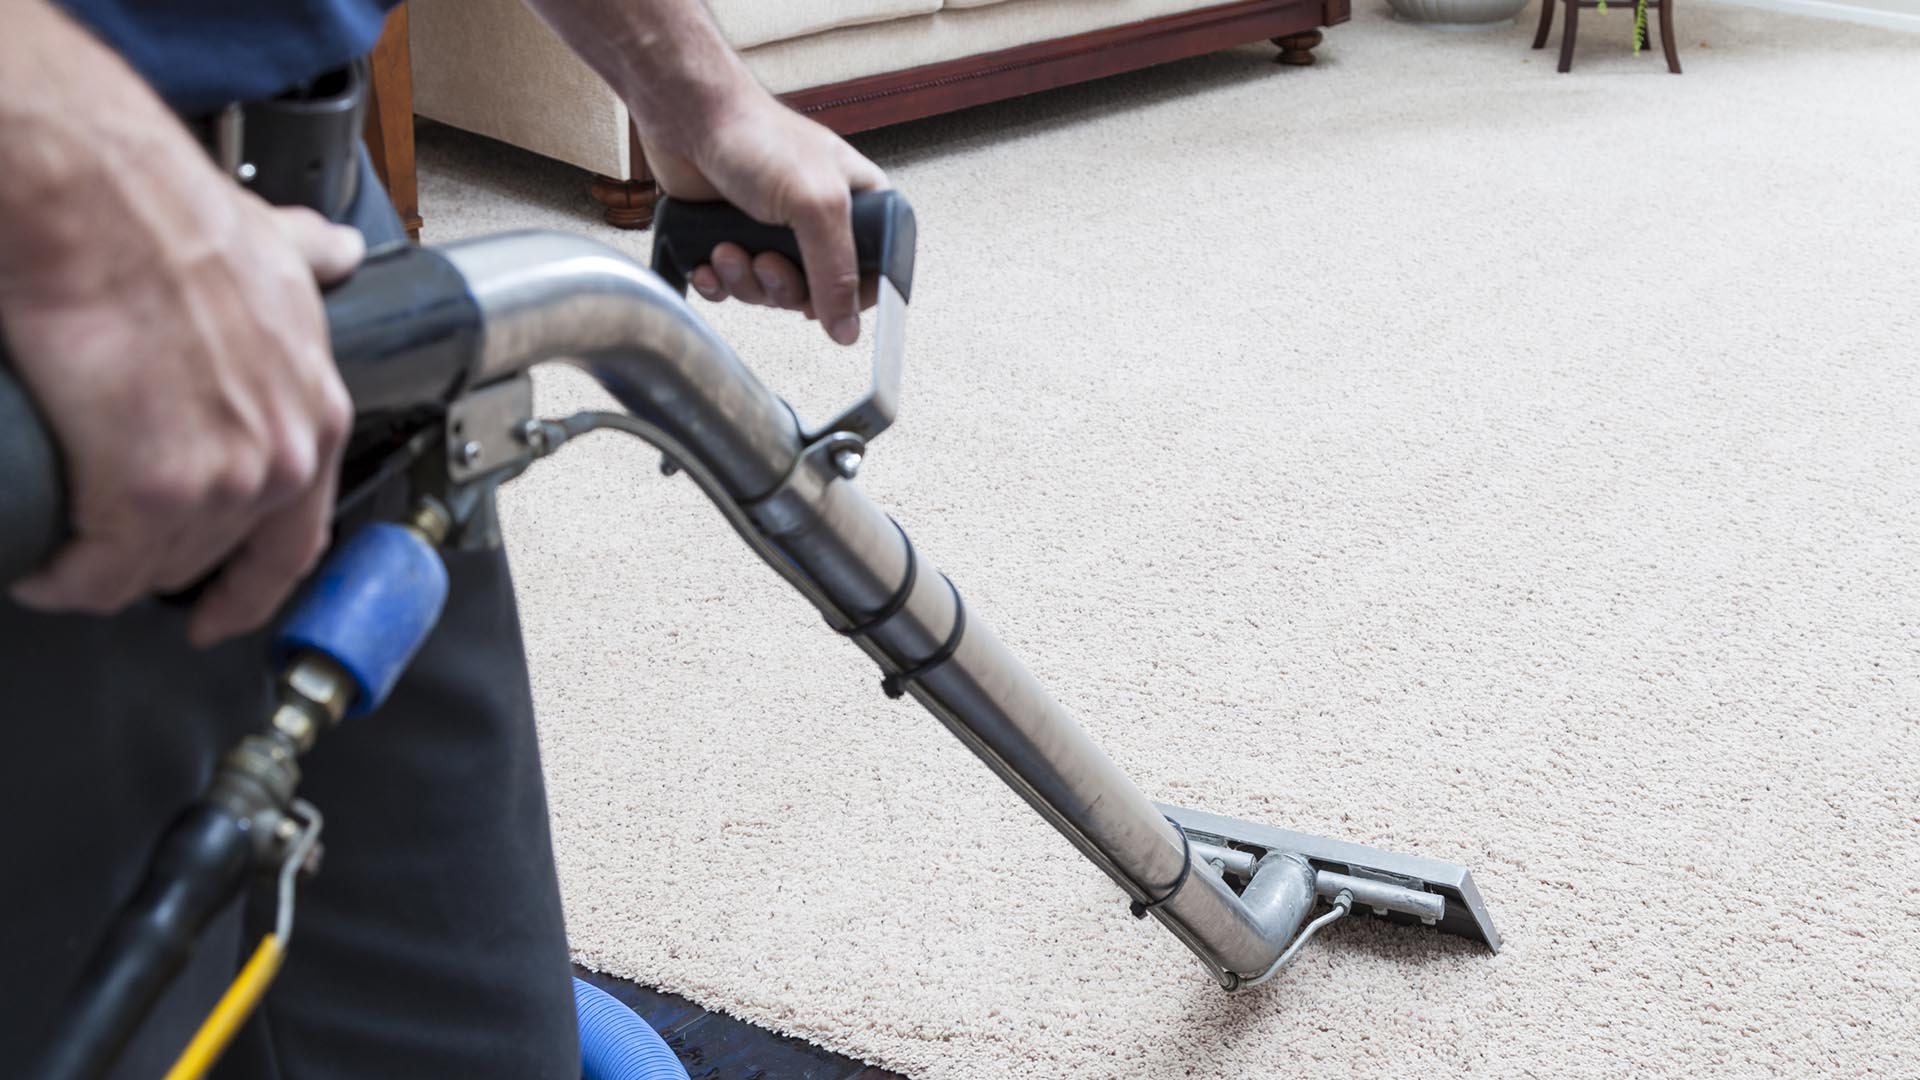 Kleanit.com Carpet Cleaning